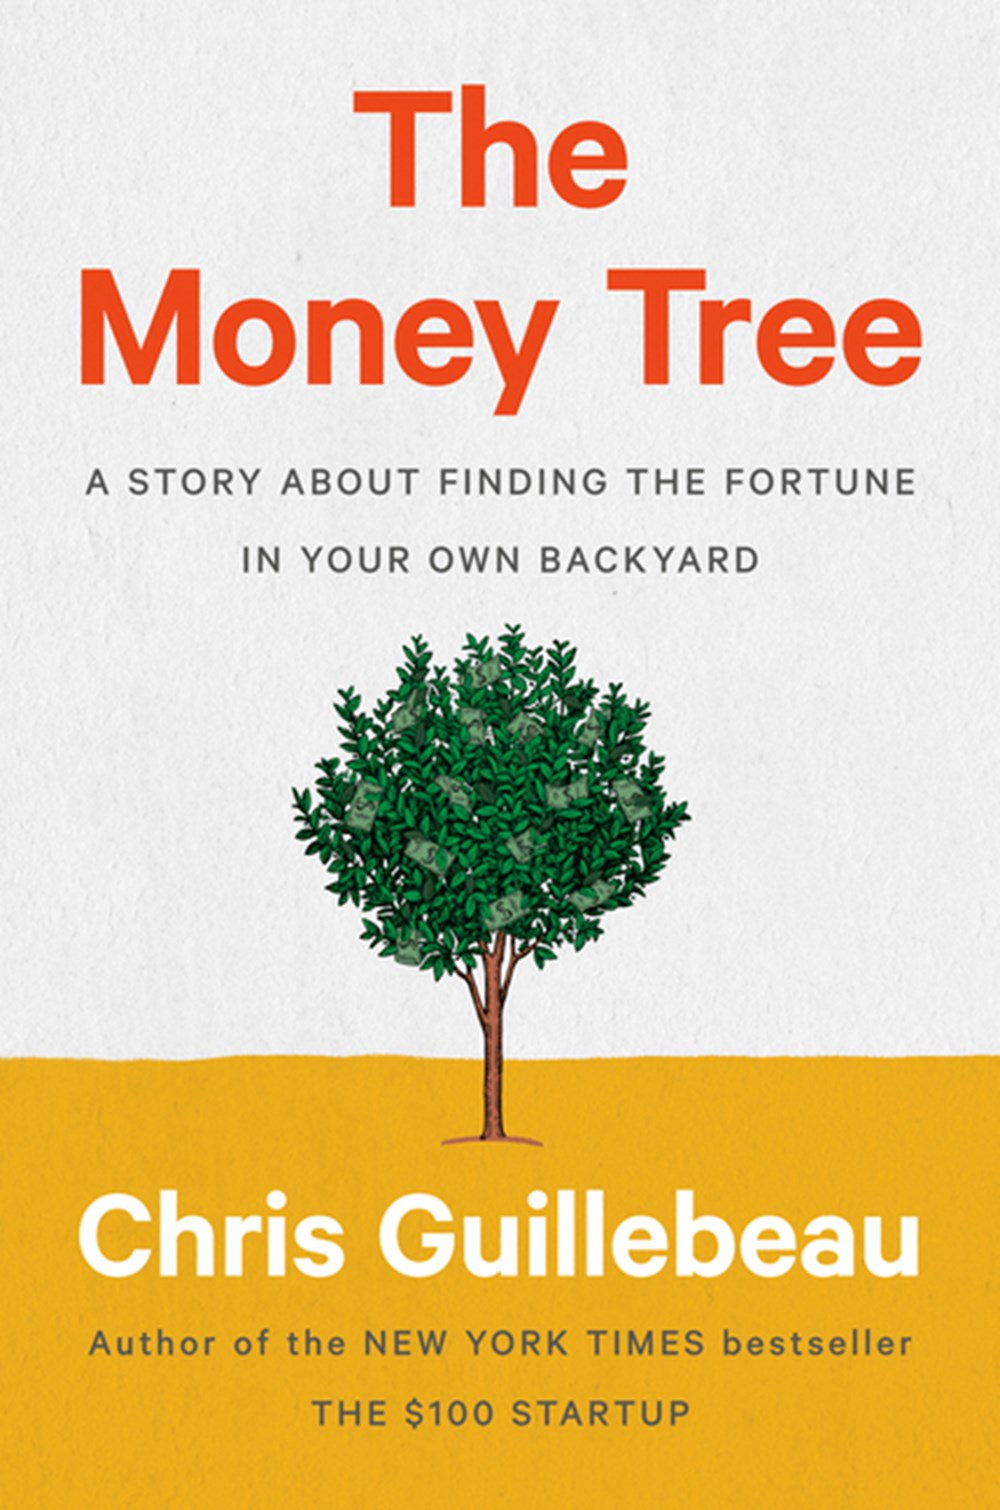 Money Tree A Story about Finding the Fortune in Your Own Backyard